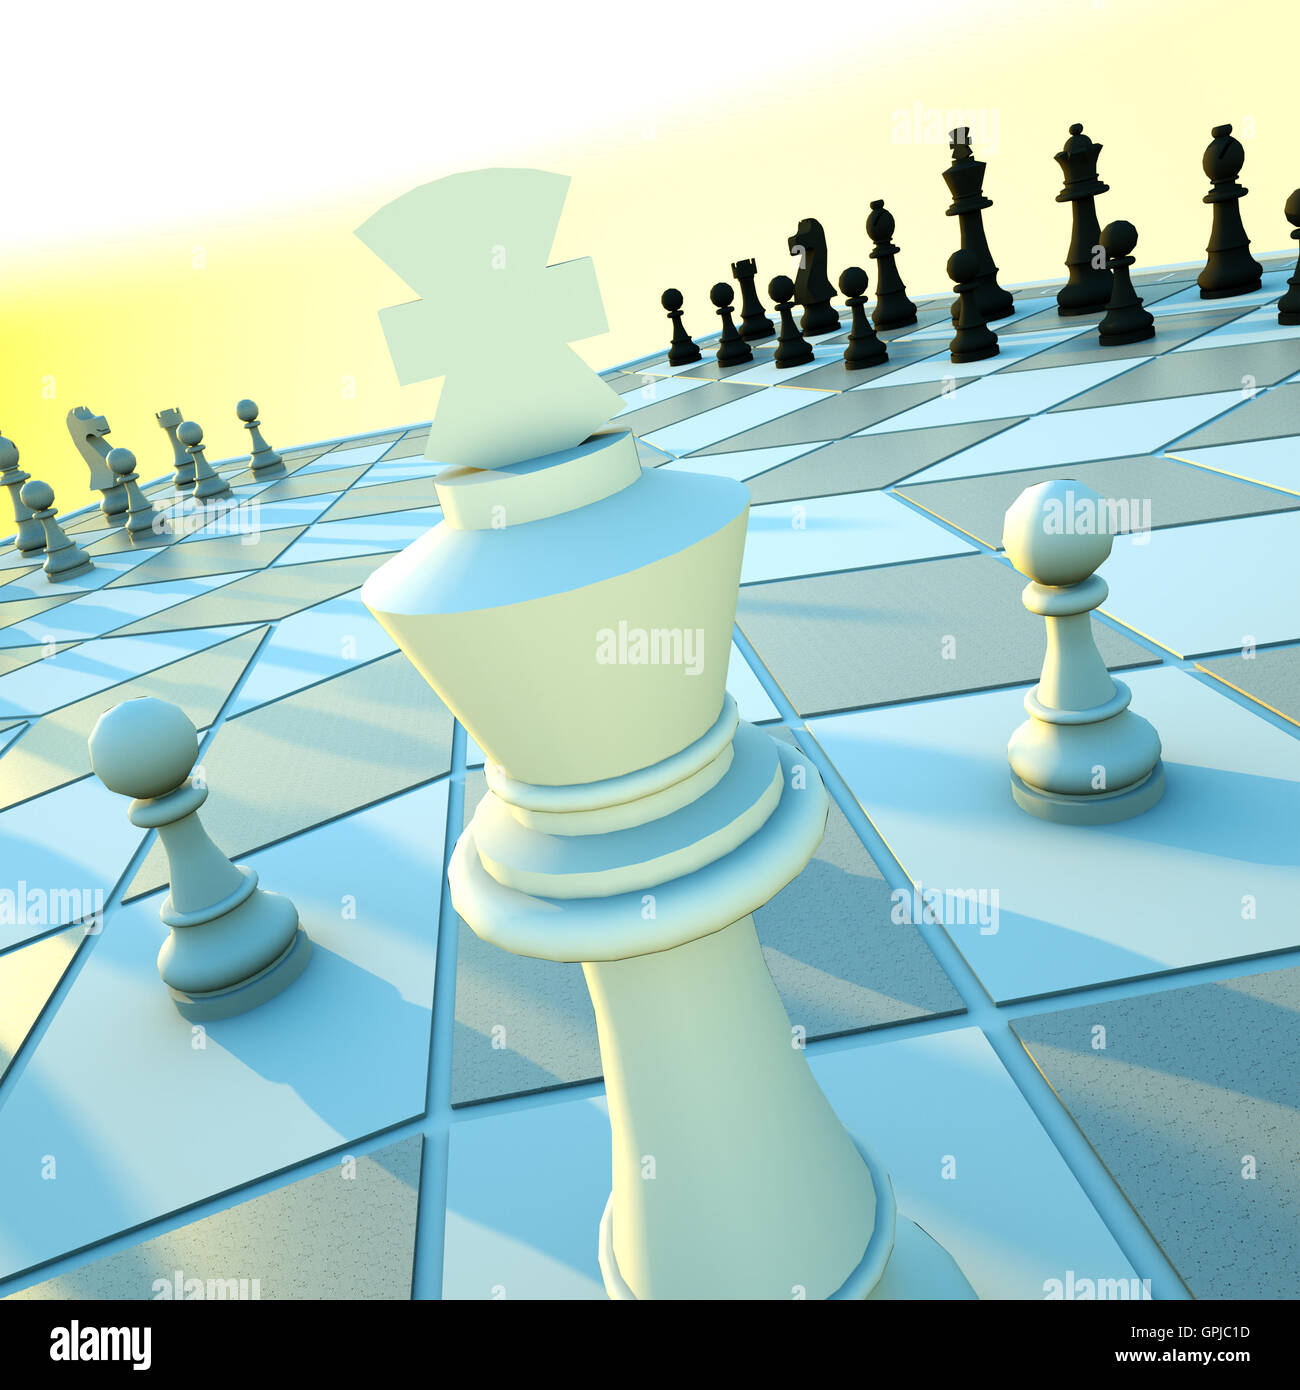 Three-handed chess - Stock Image